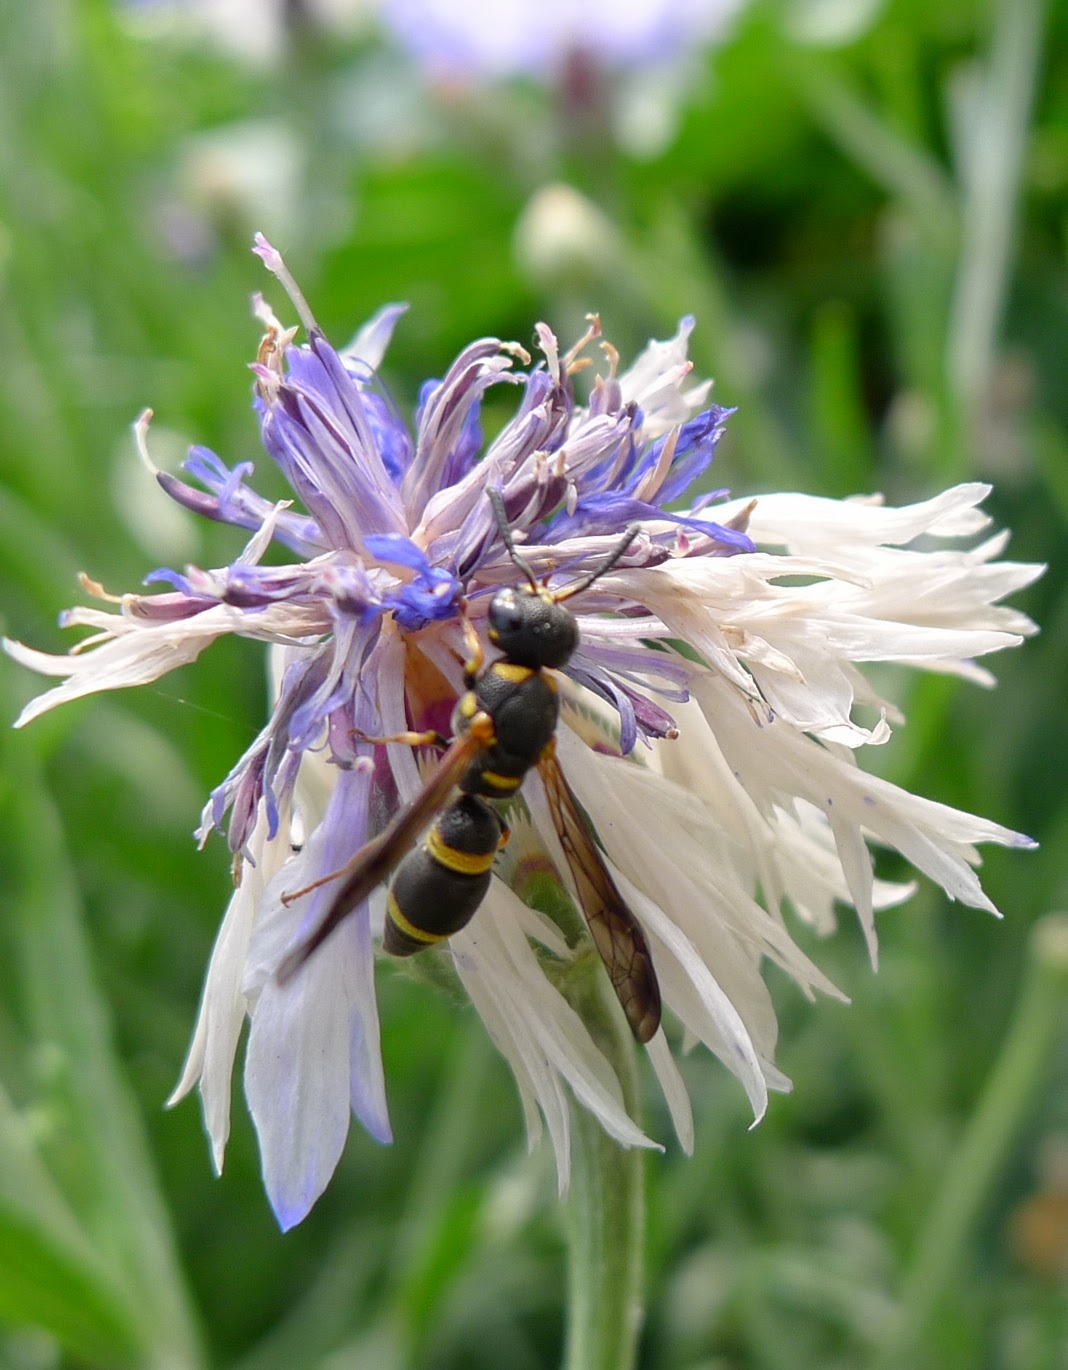 Wasp, pollinators, urban farming